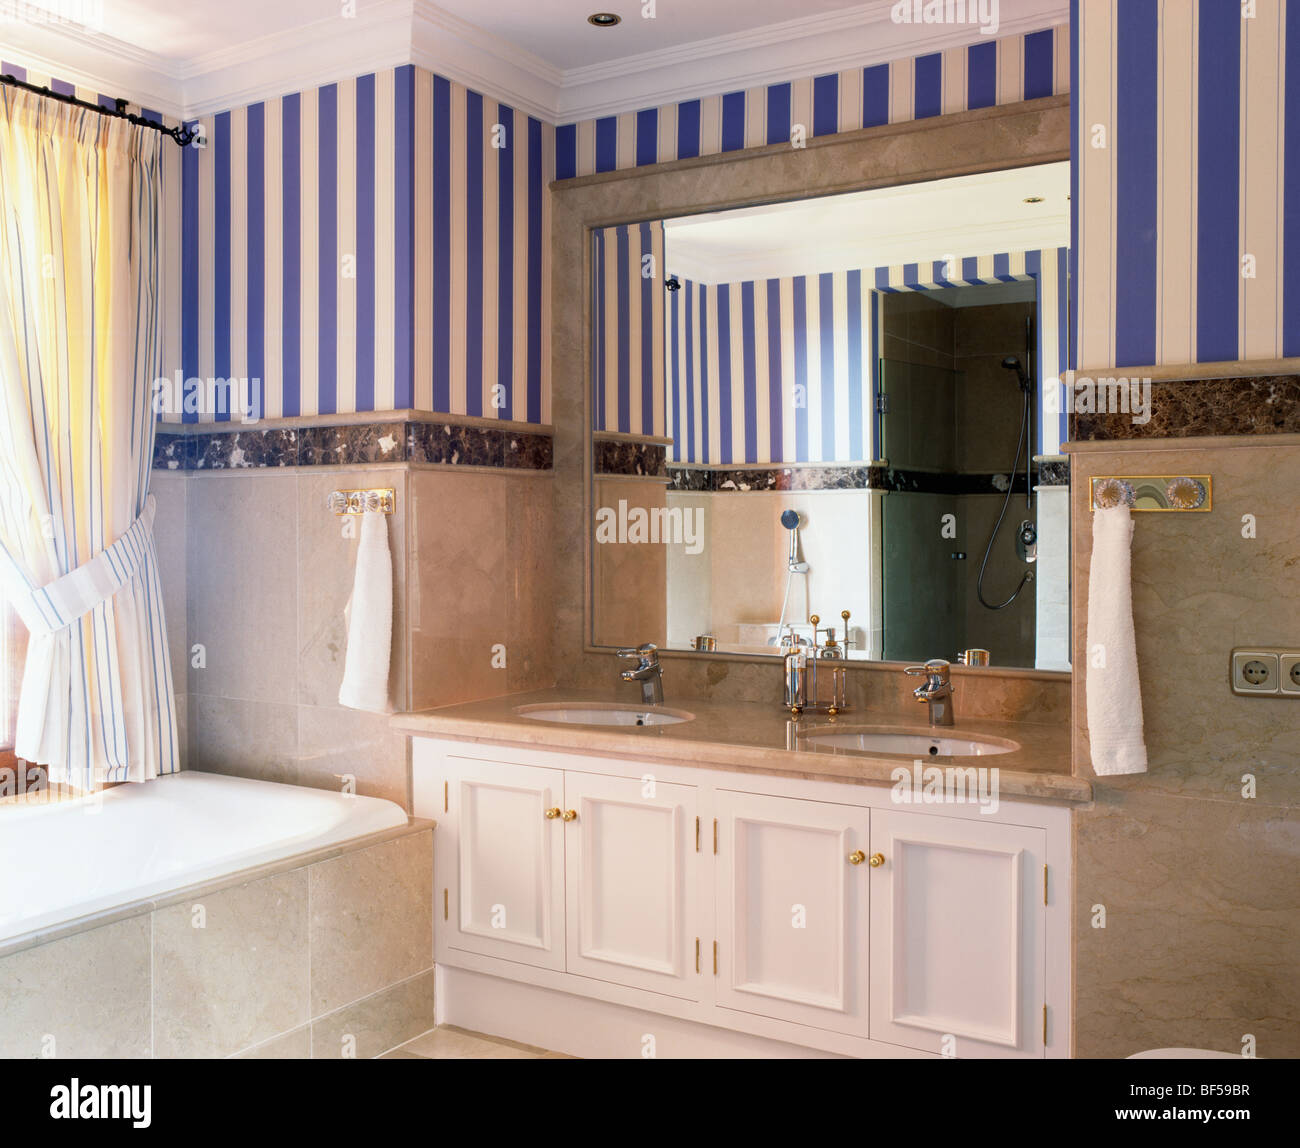 Merveilleux Blue Striped Wallpaper In Modern Spanish Bathroom With Mirror Above Double  Basins In Recessed Vanity Unit